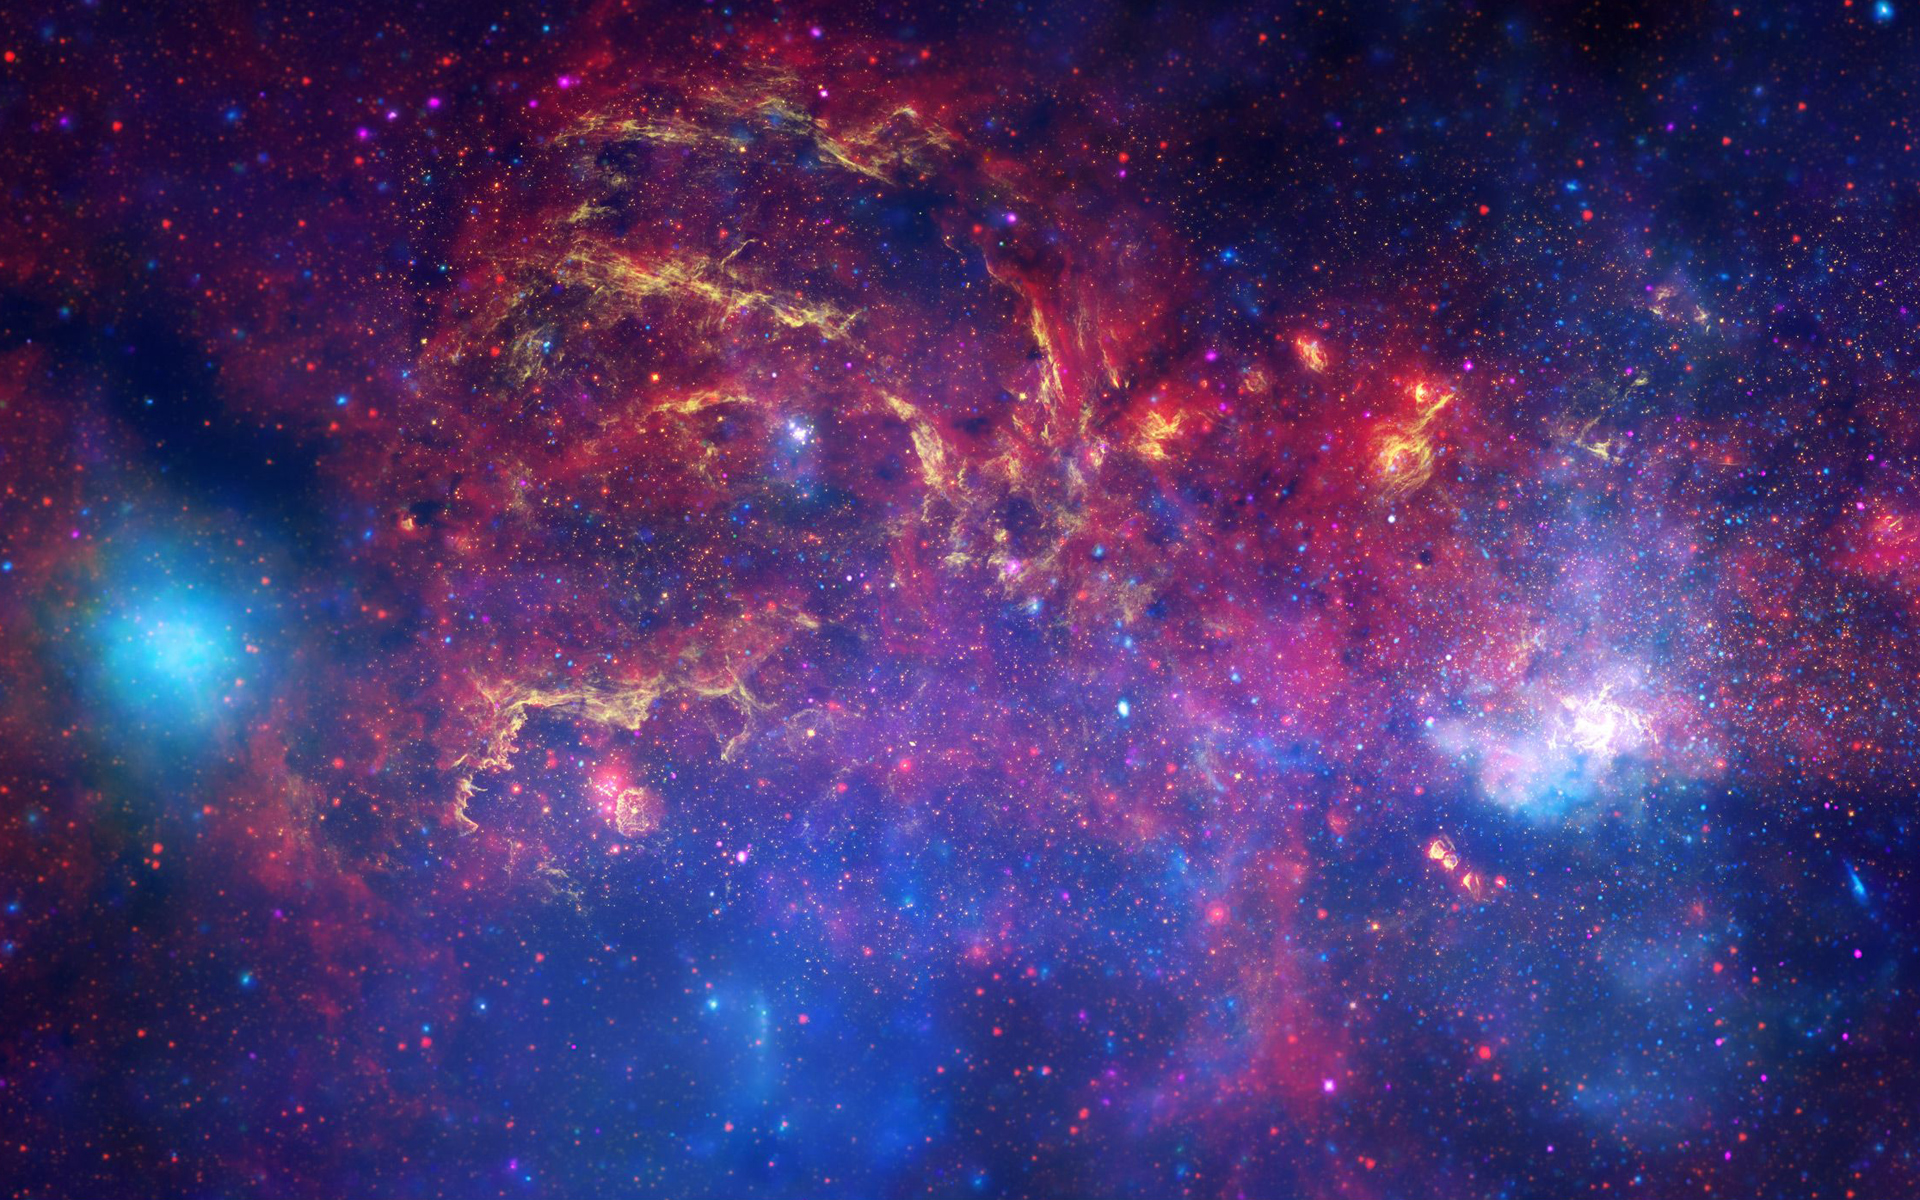 galaxy wallpaper tumblr 13785 14199 hd wallpapers